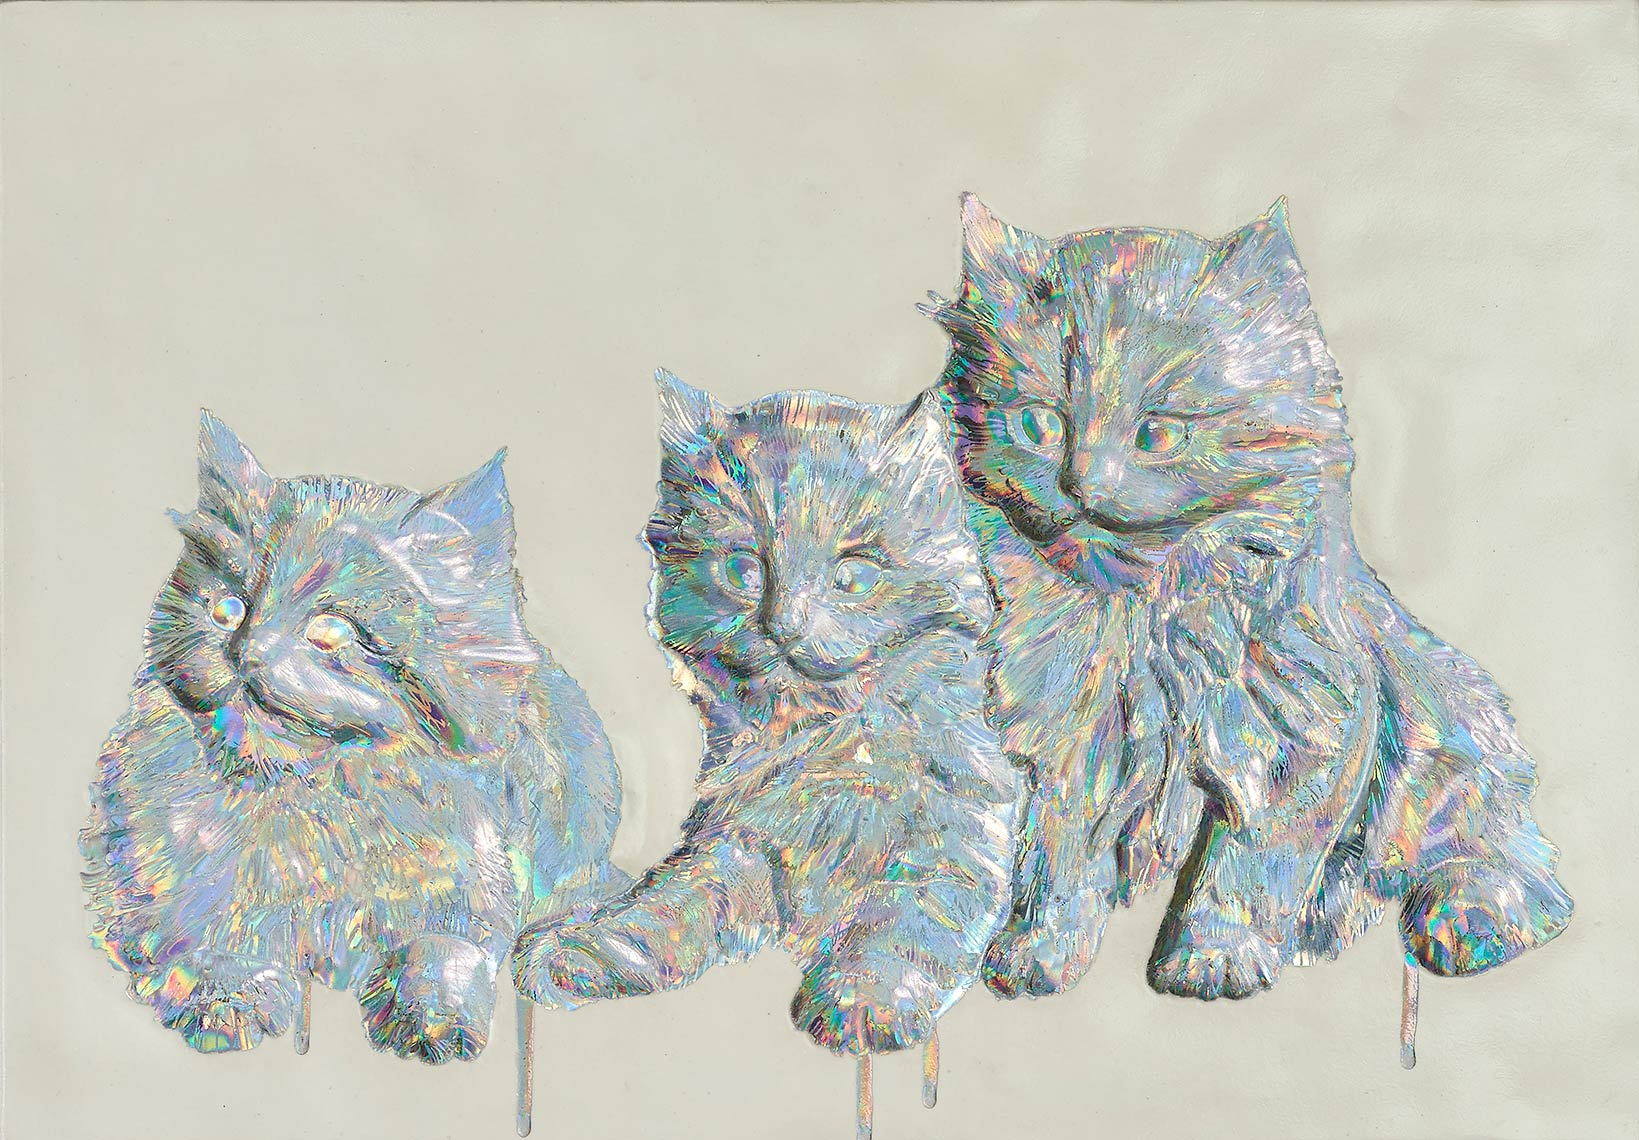 Kitties_2015_holographic-foil-on-relief-cast-hydrostone-plaster_16-x-20-inches